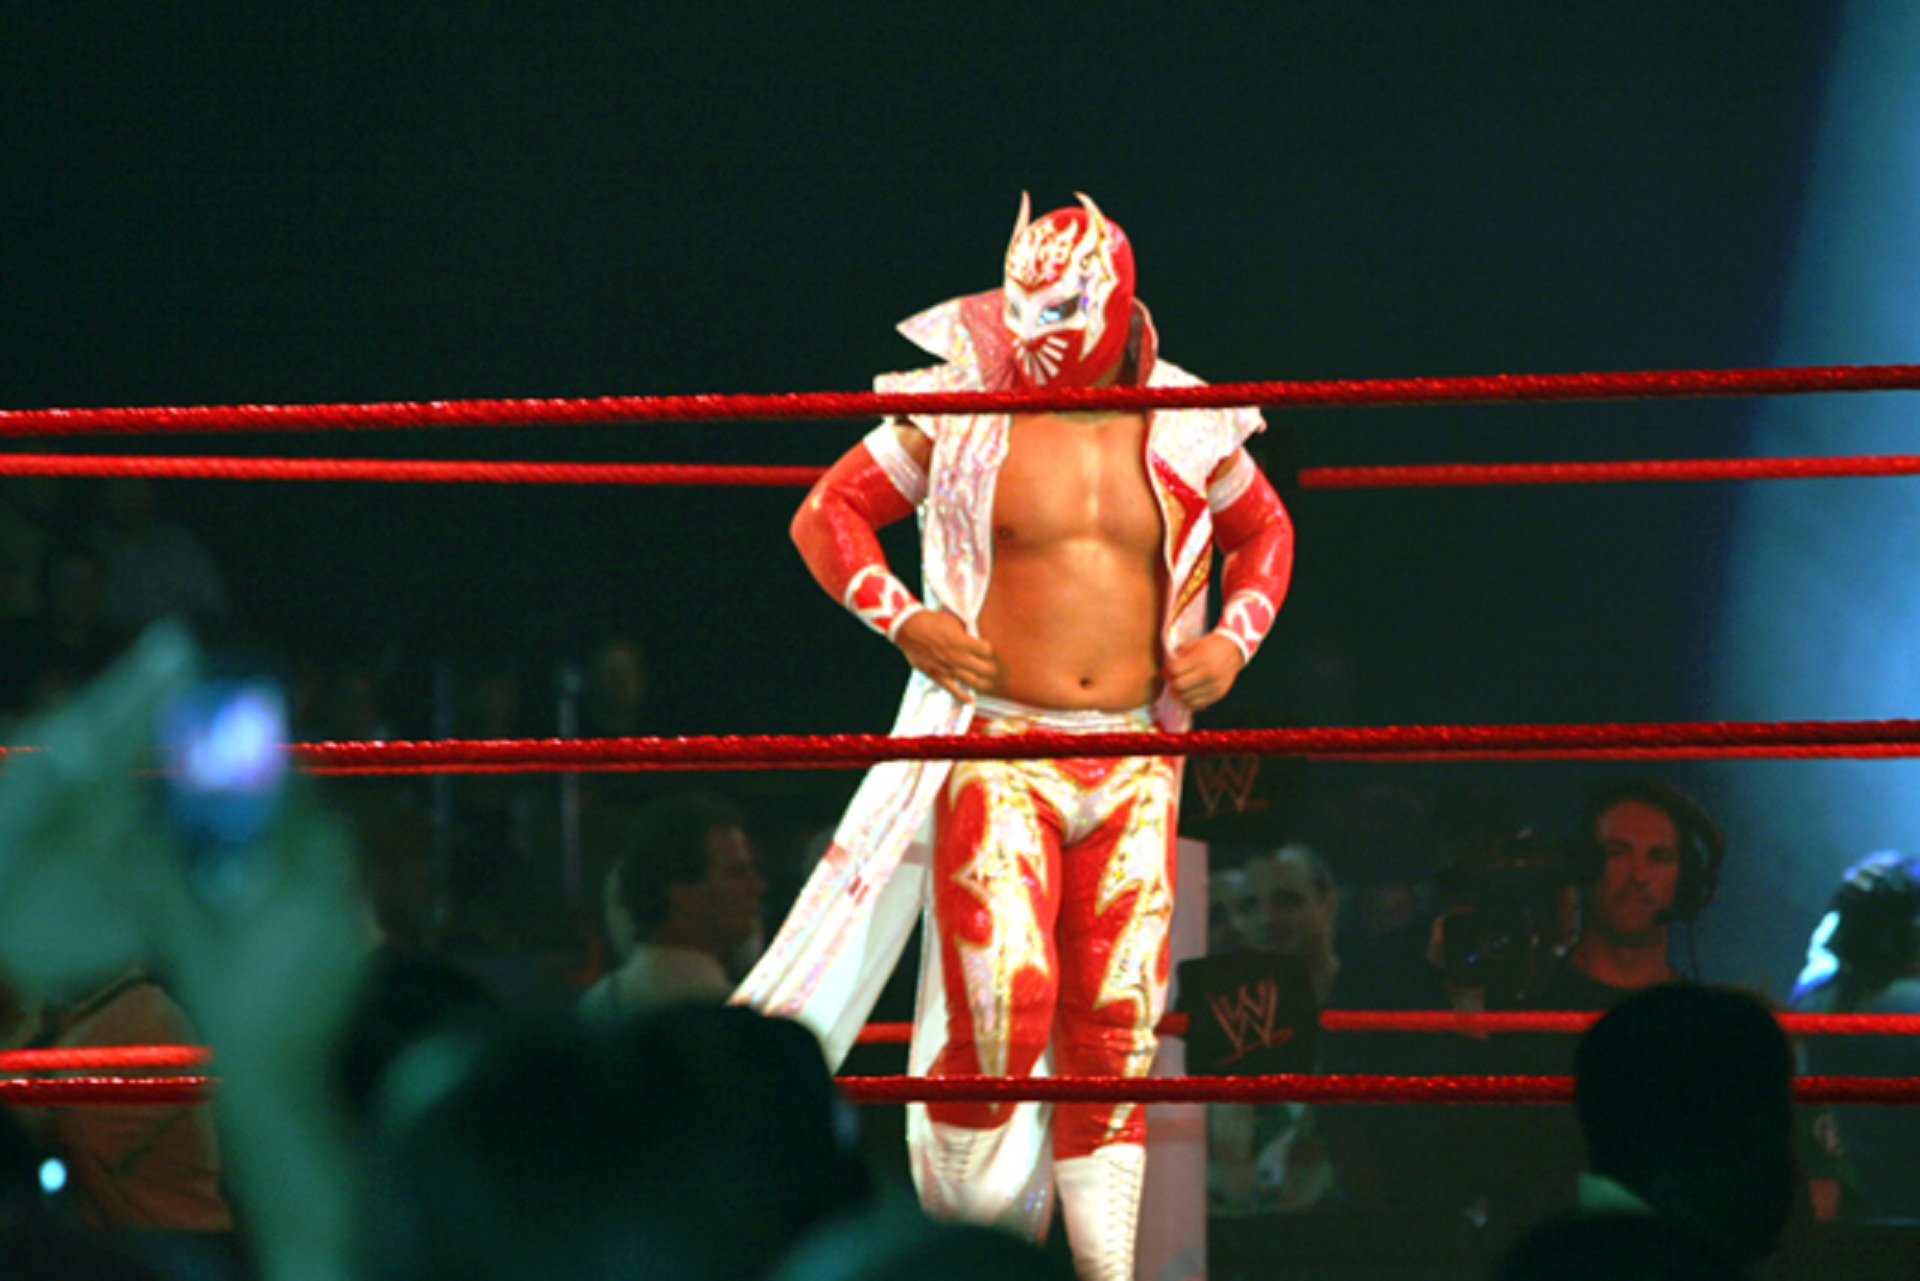 File:Sincara raw 2012.jpg - Wikimedia Commons